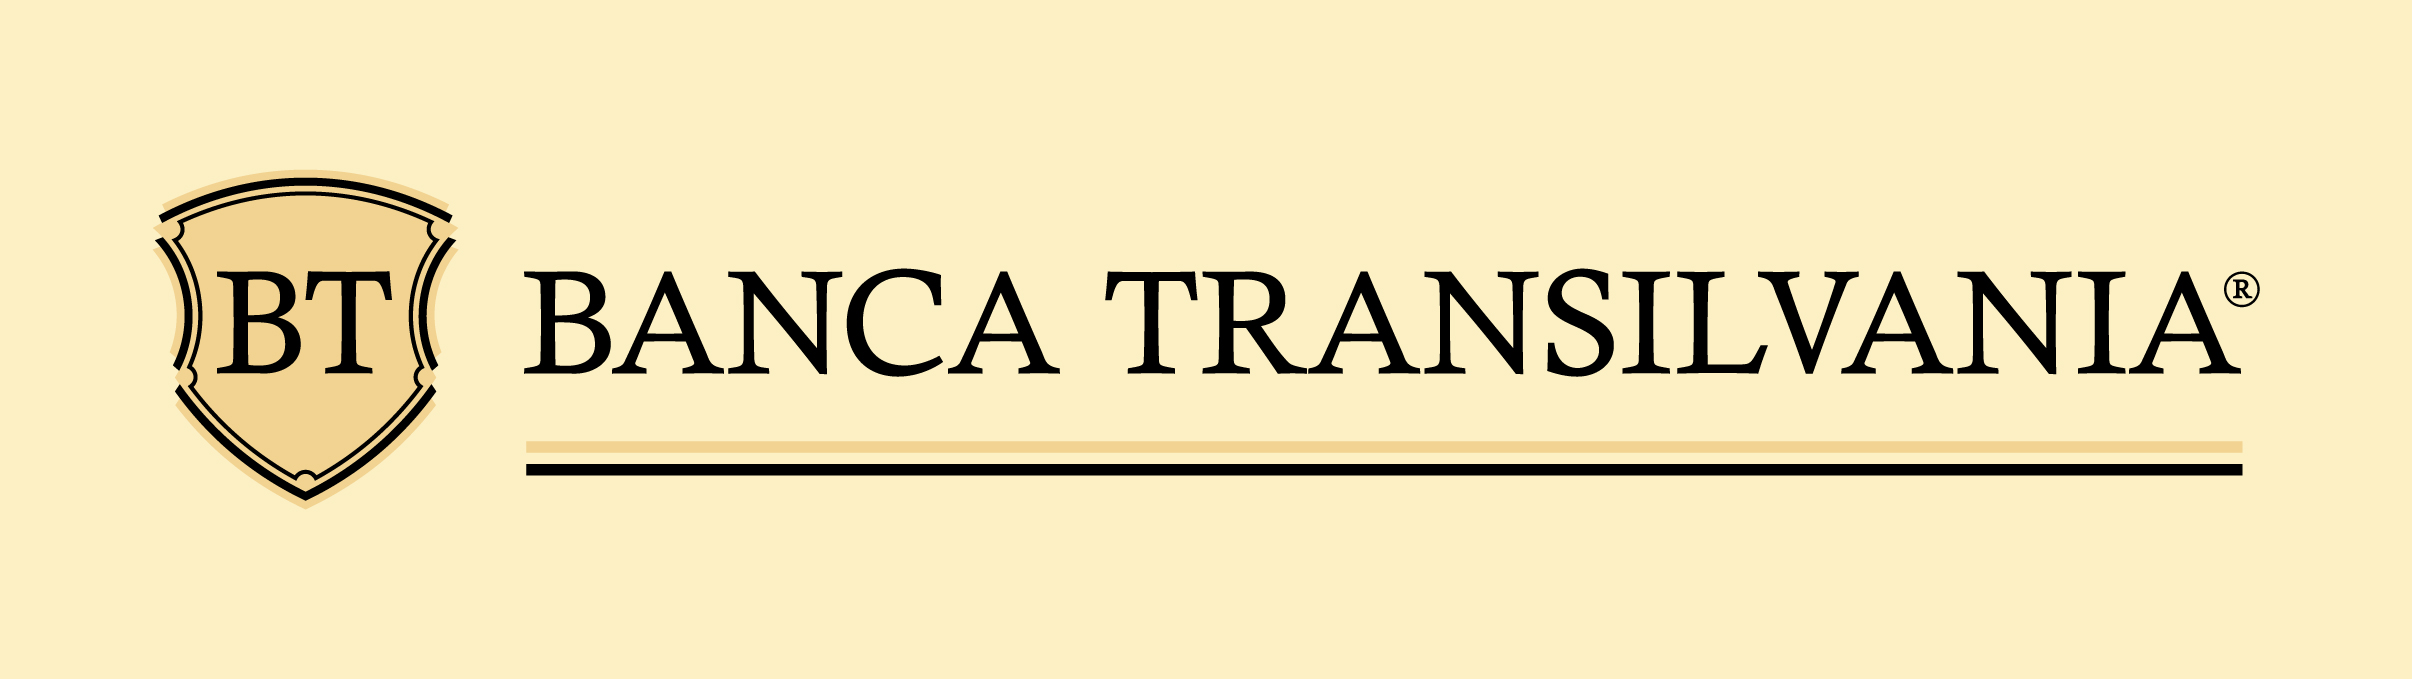 The shareholders of Banca Transilvania have approved  the merger of Volksbank Romania with Banca Transilvania